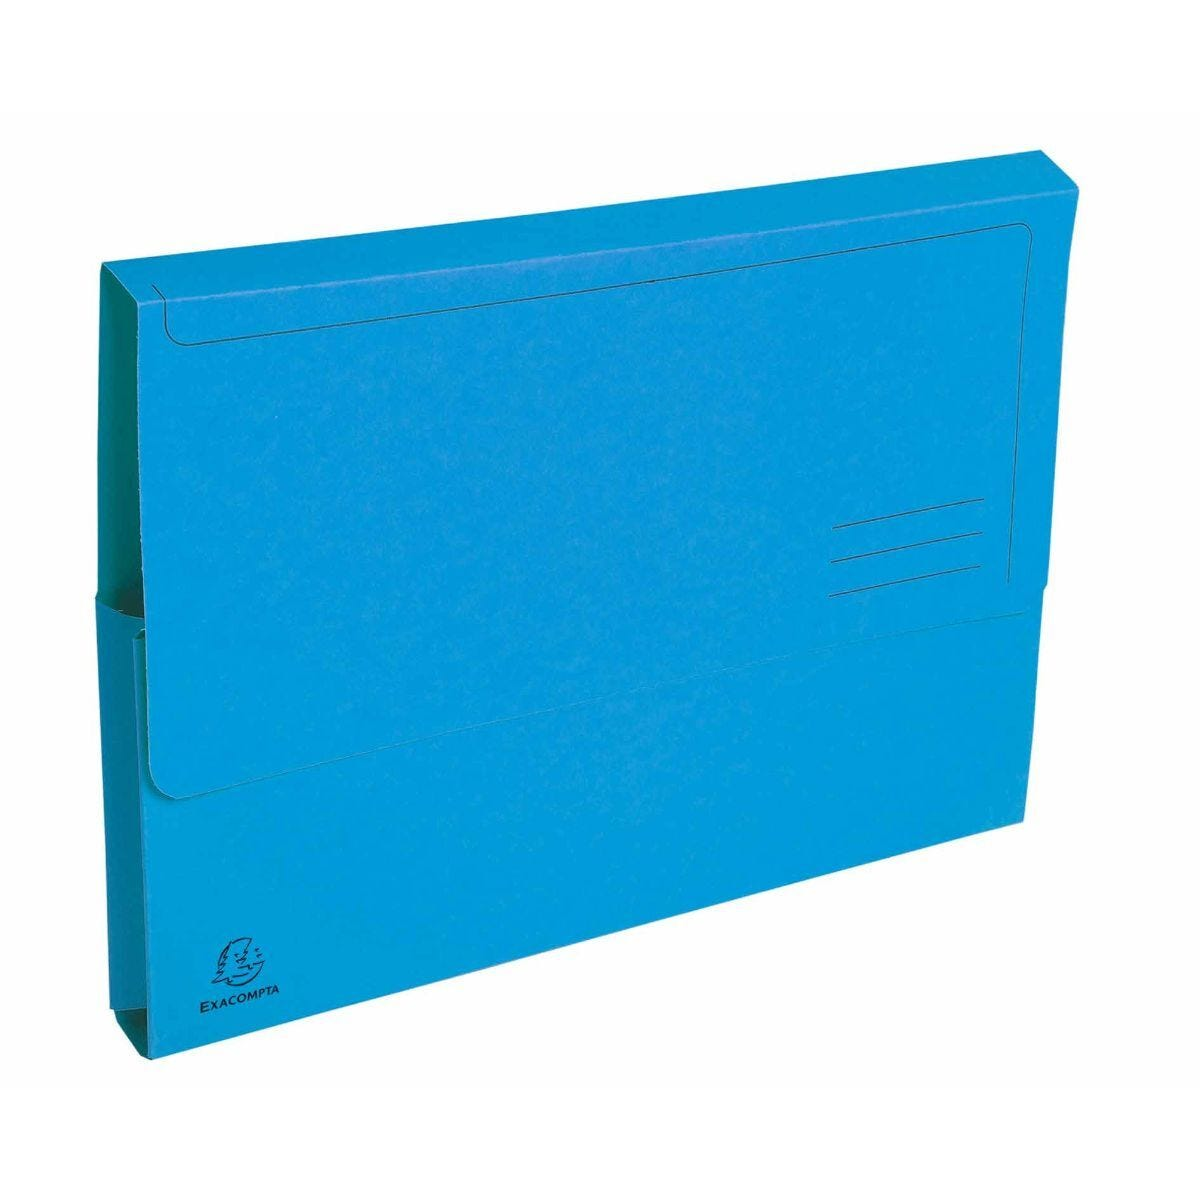 Exacompta Forever Document Wallets A4 2 Packs of 50 290gsm